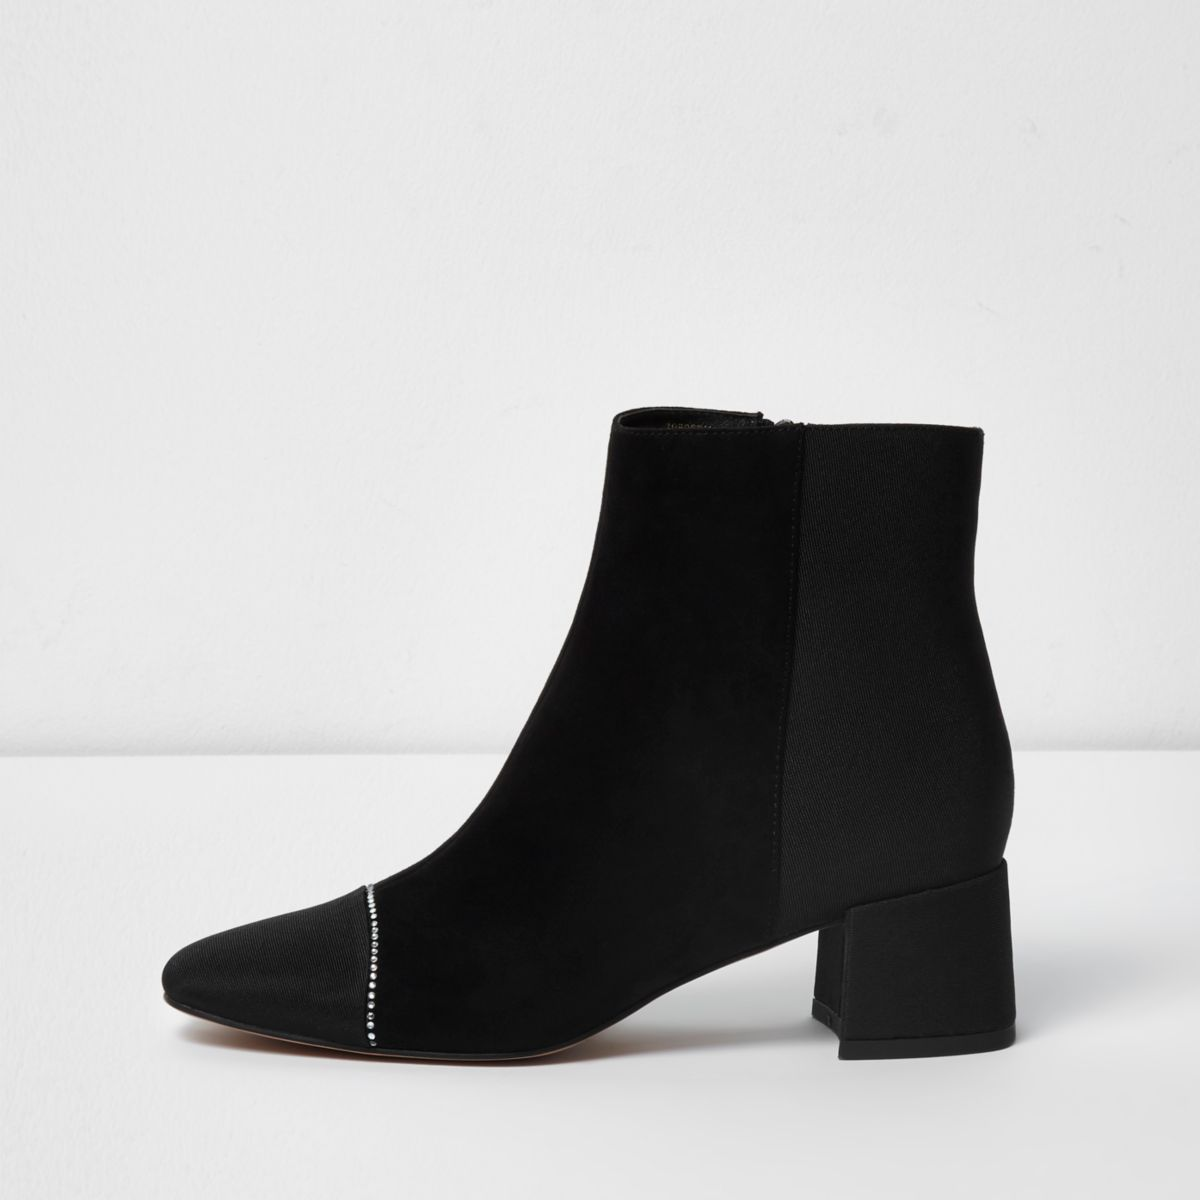 Black faux suede toe cap detail boots